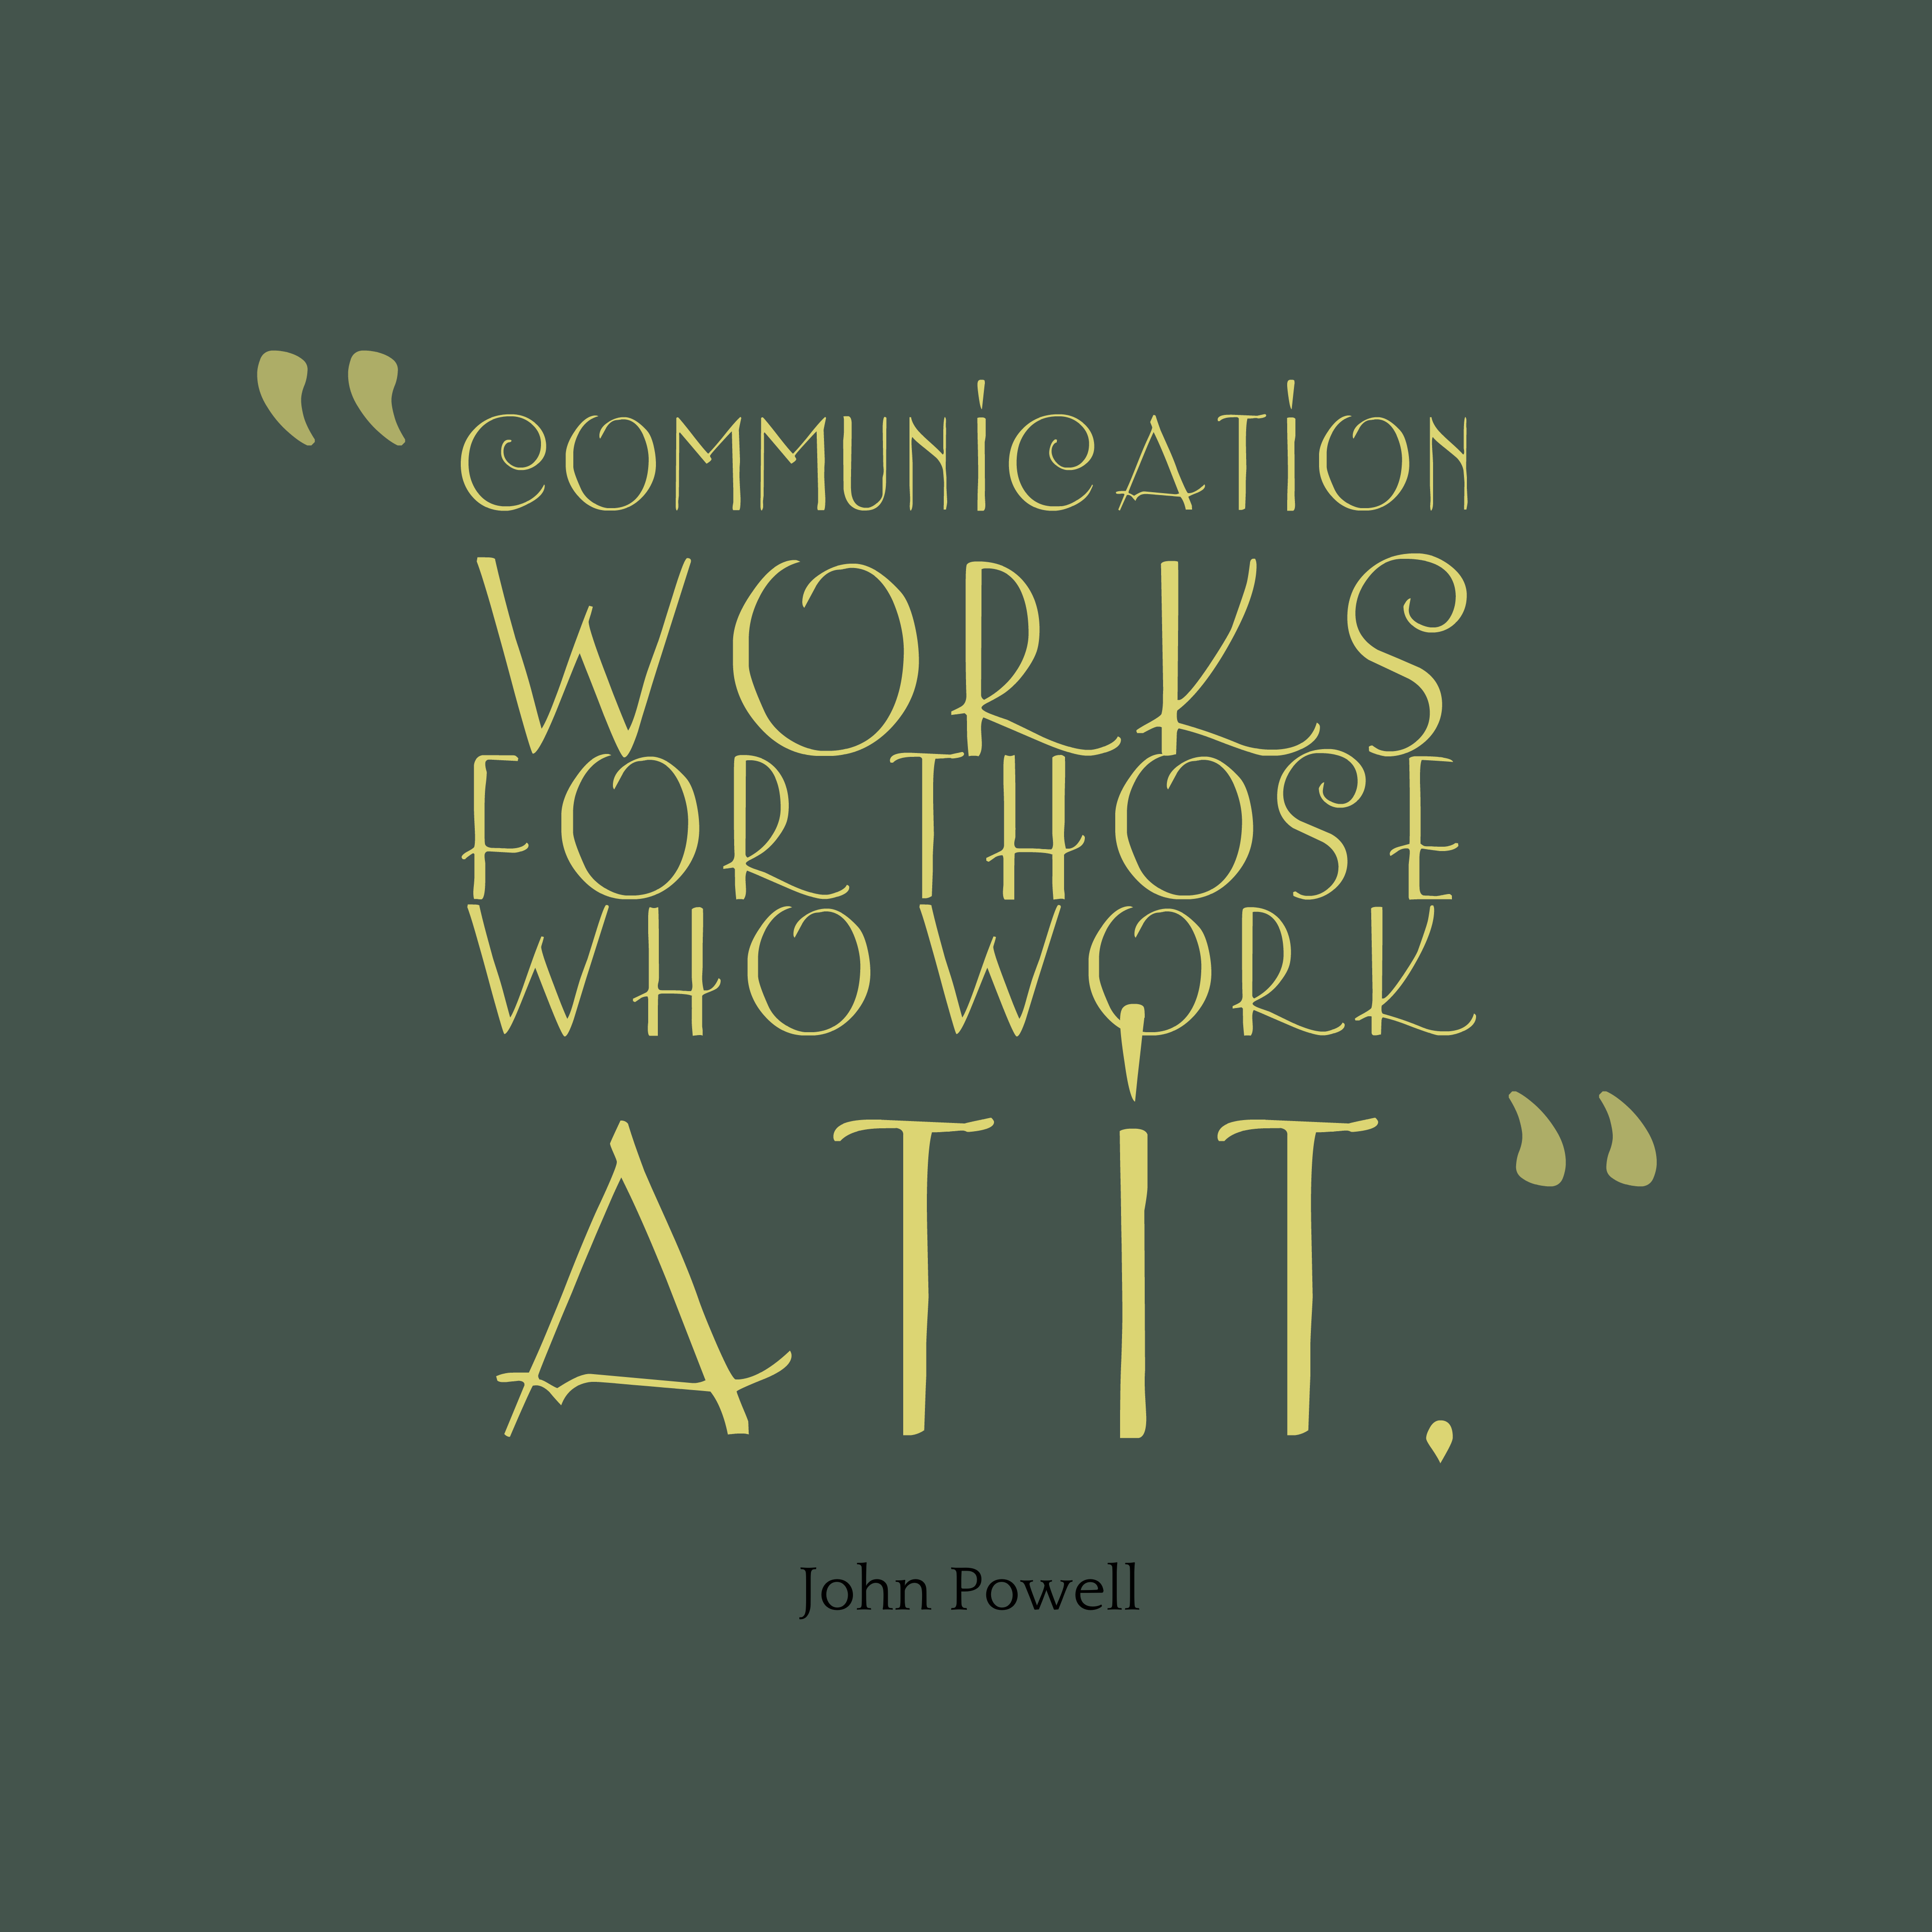 Quotes about Communication at work (29 quotes)